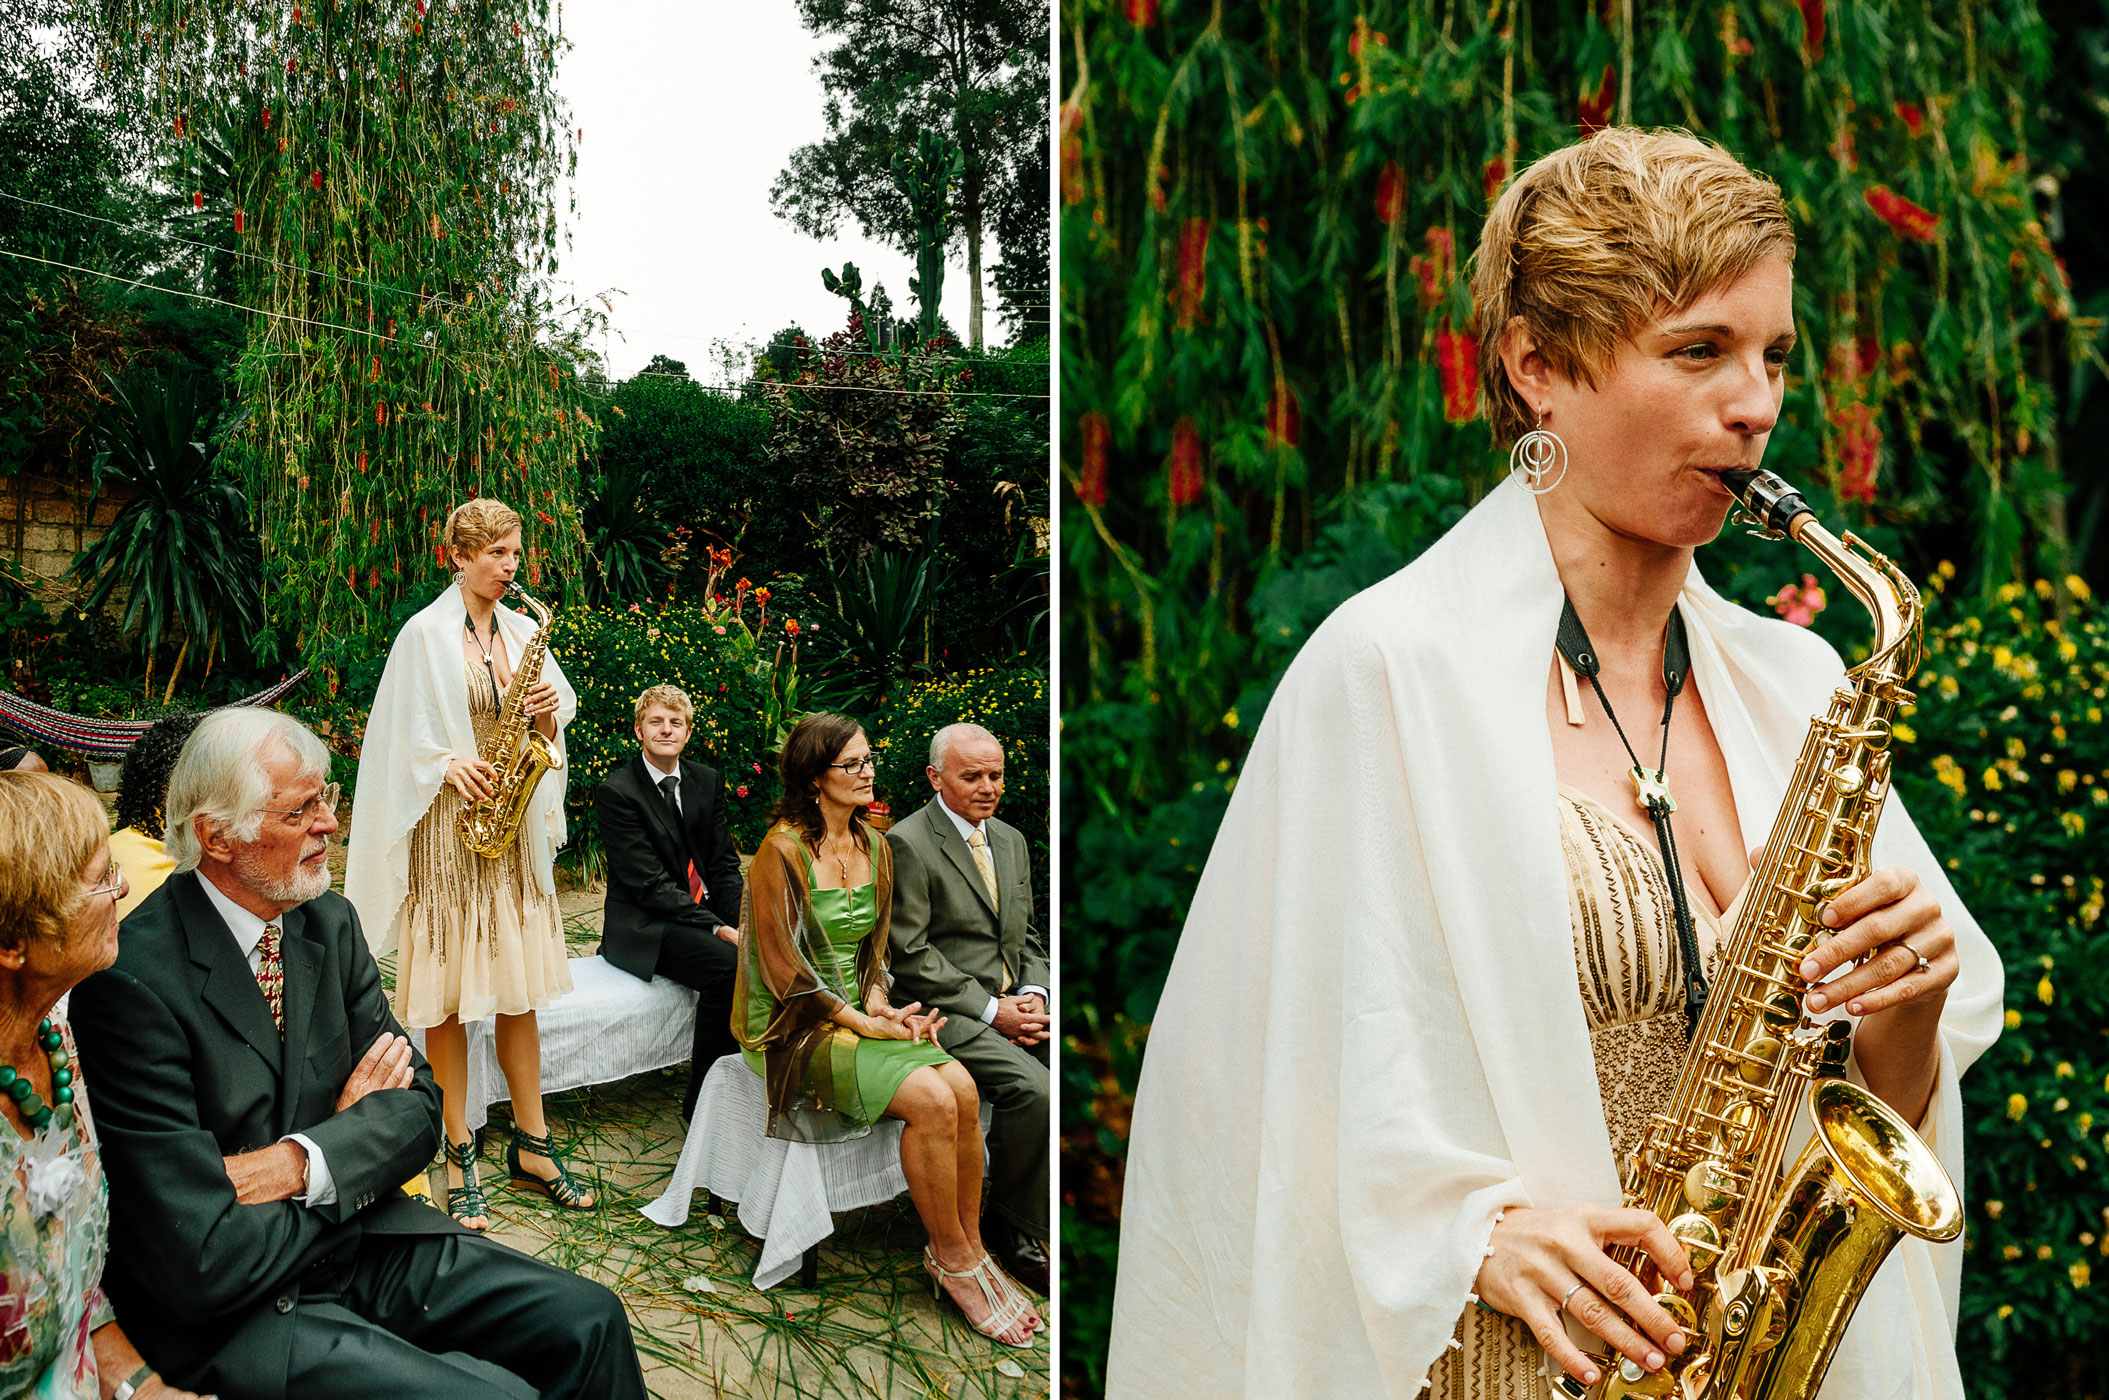 Backyard garden wedding ceremony in Addis Ababa; photographed by Northern California Offbeat Wedding photographer Kate Donaldson Photography.